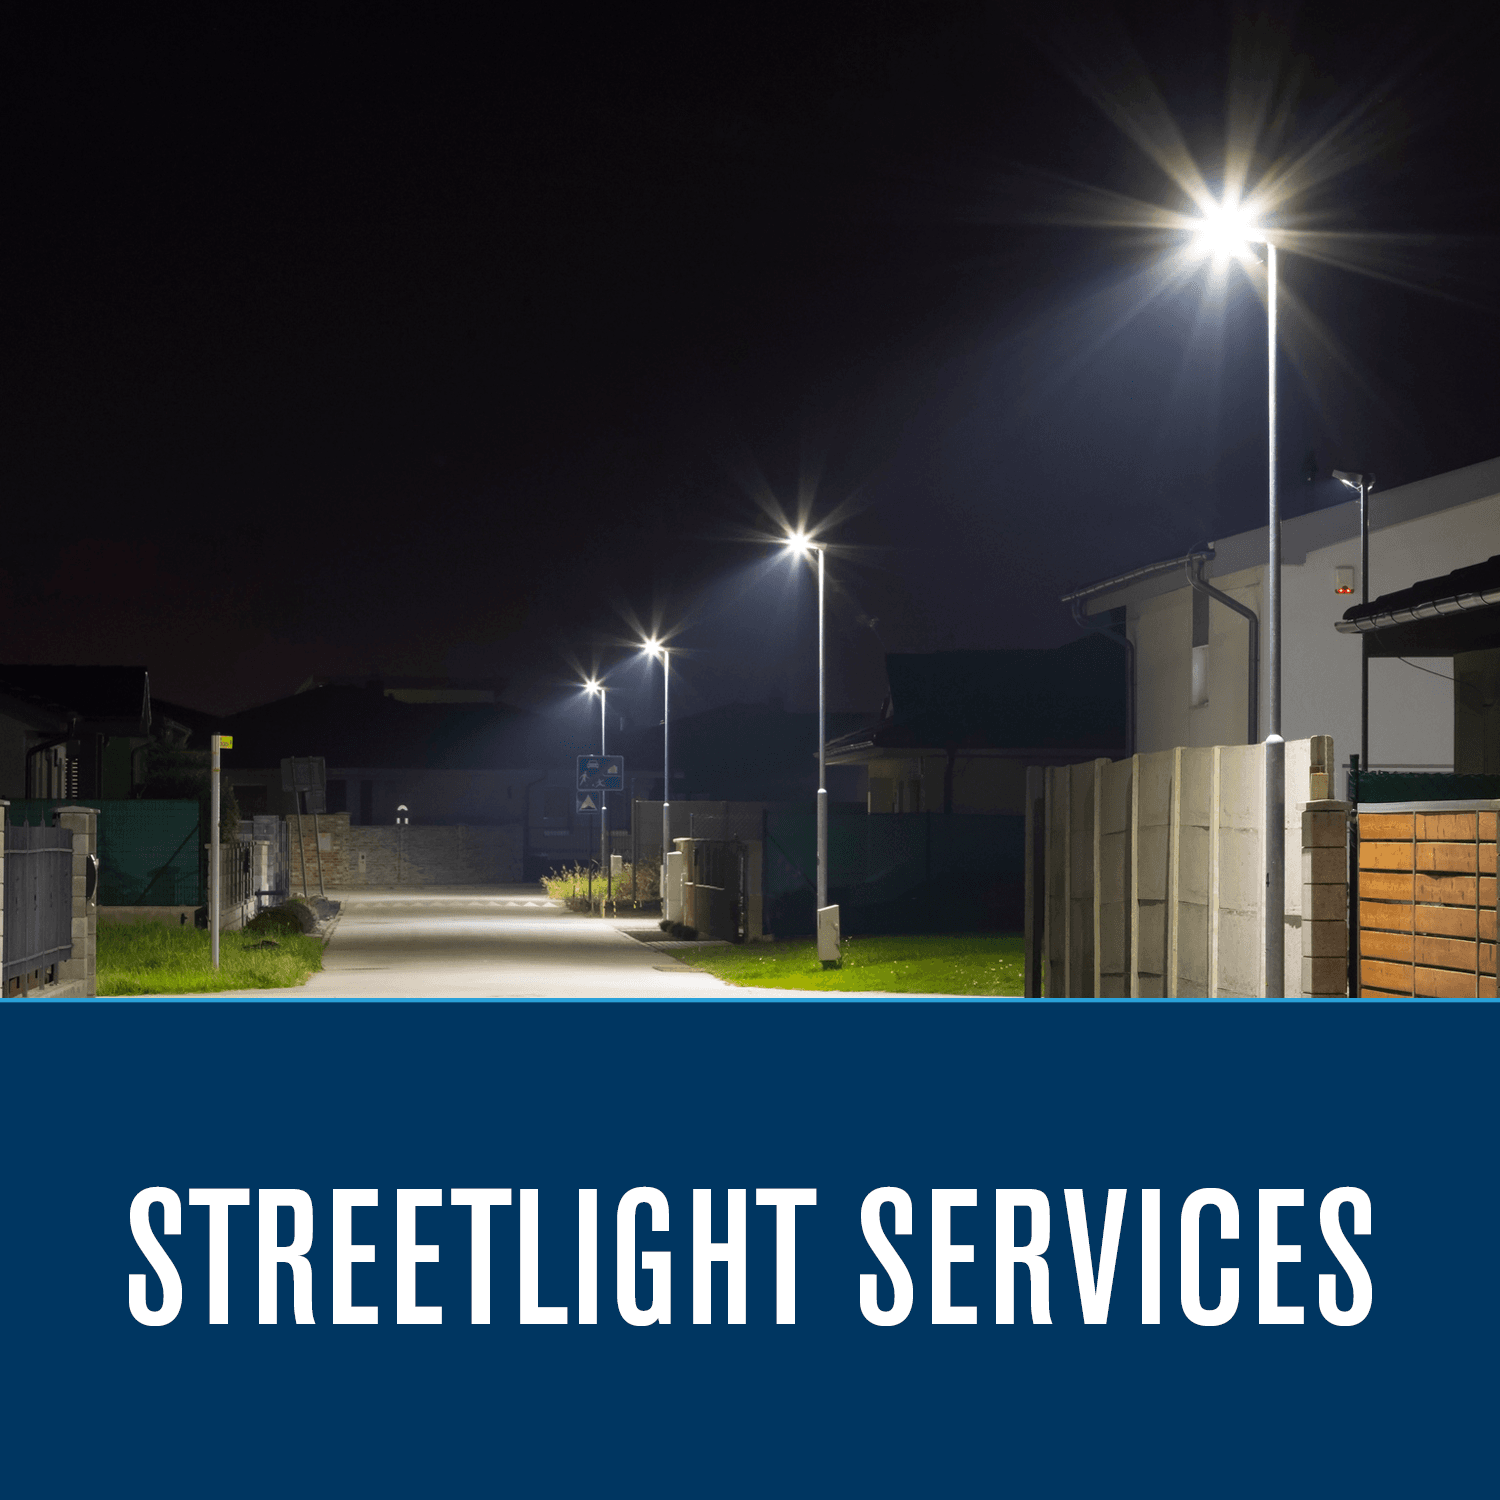 Streetlight Services